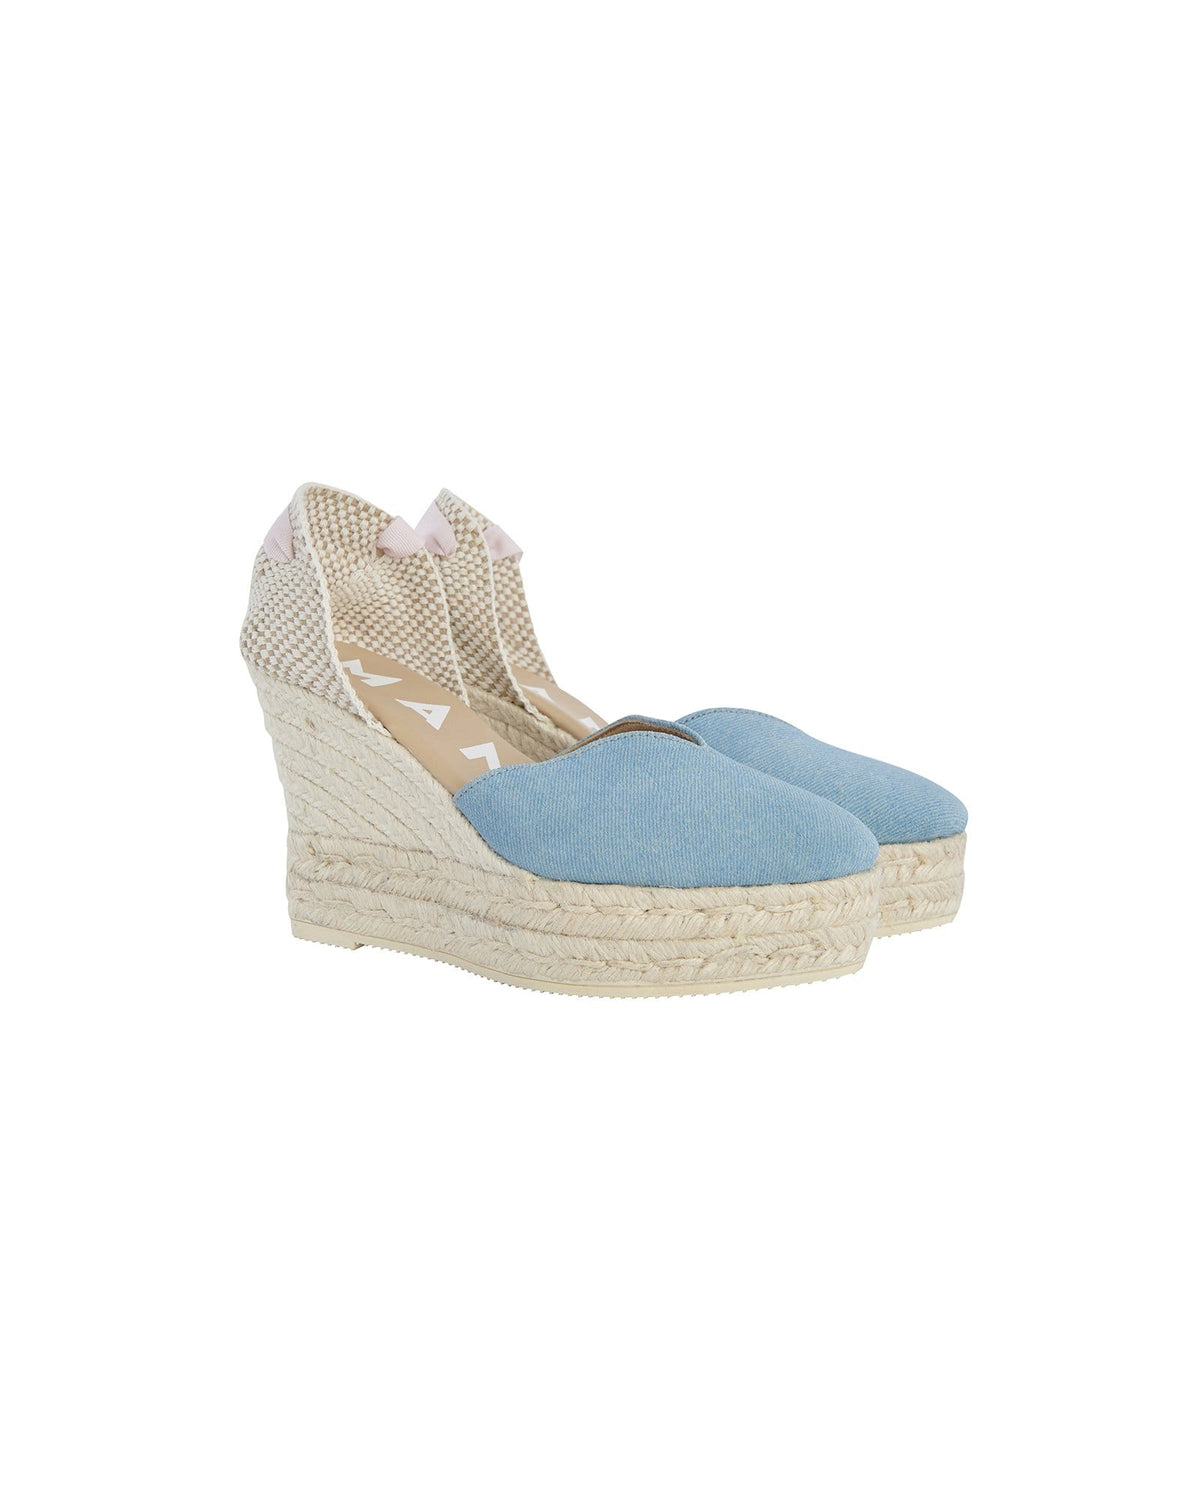 MANEBI CALZATURE  Wedge sandals San Francisco